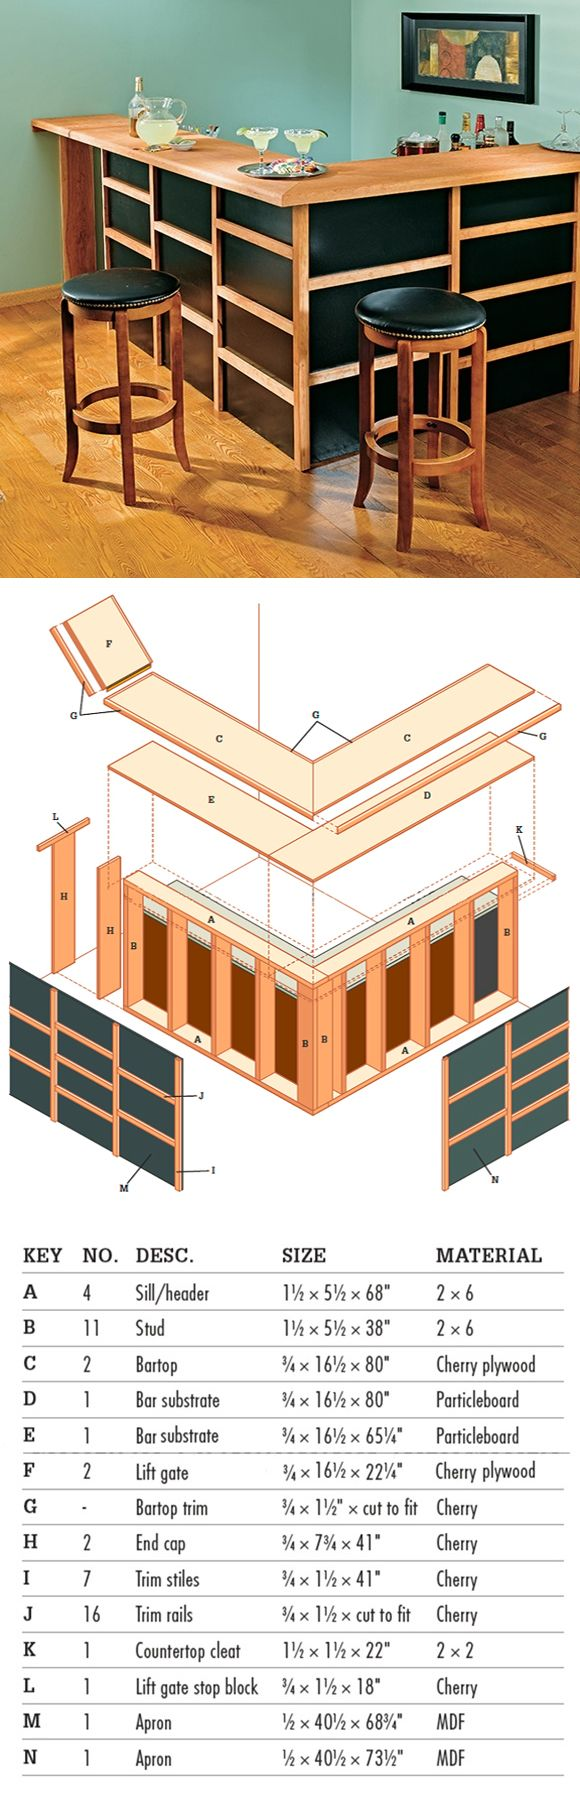 Merveilleux How To Build A Basement Bar ... Free Specs, Cutting Lists And Plans. | Wood  Plans And Wood Project Ideas | Pinterest | Basements, Cuttings And Bar